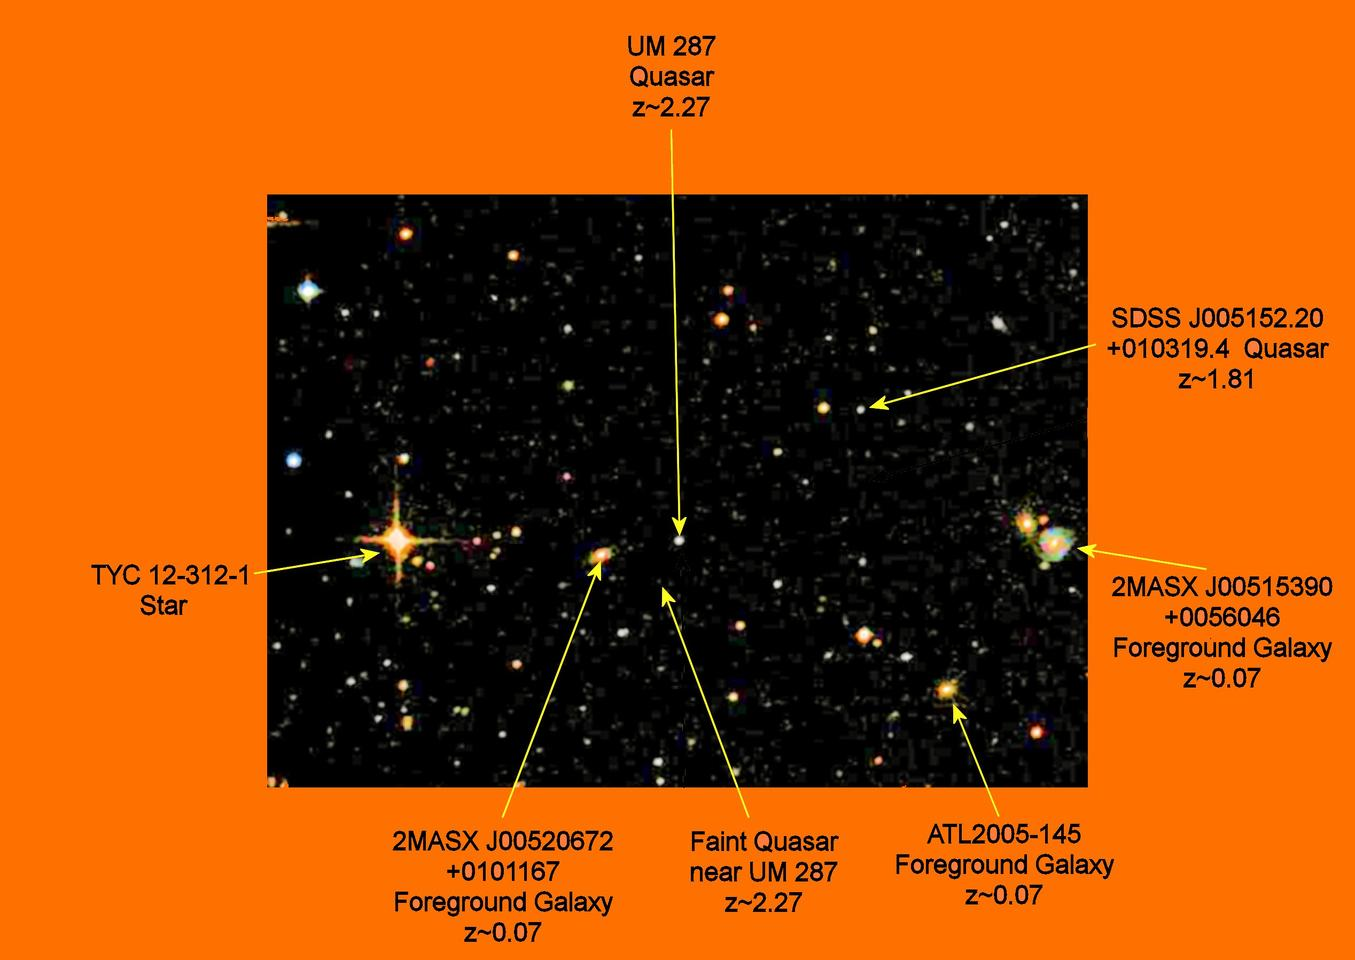 A map, roughly 10 x 7 minutes of arc in size, of the region surrounding UM 287. This is based on a broad spectrum astrophotograph, so does not show the atypical nebula surrounding UM 287 (Photo: Sloan Digital Sky Survey and B. Dodson)